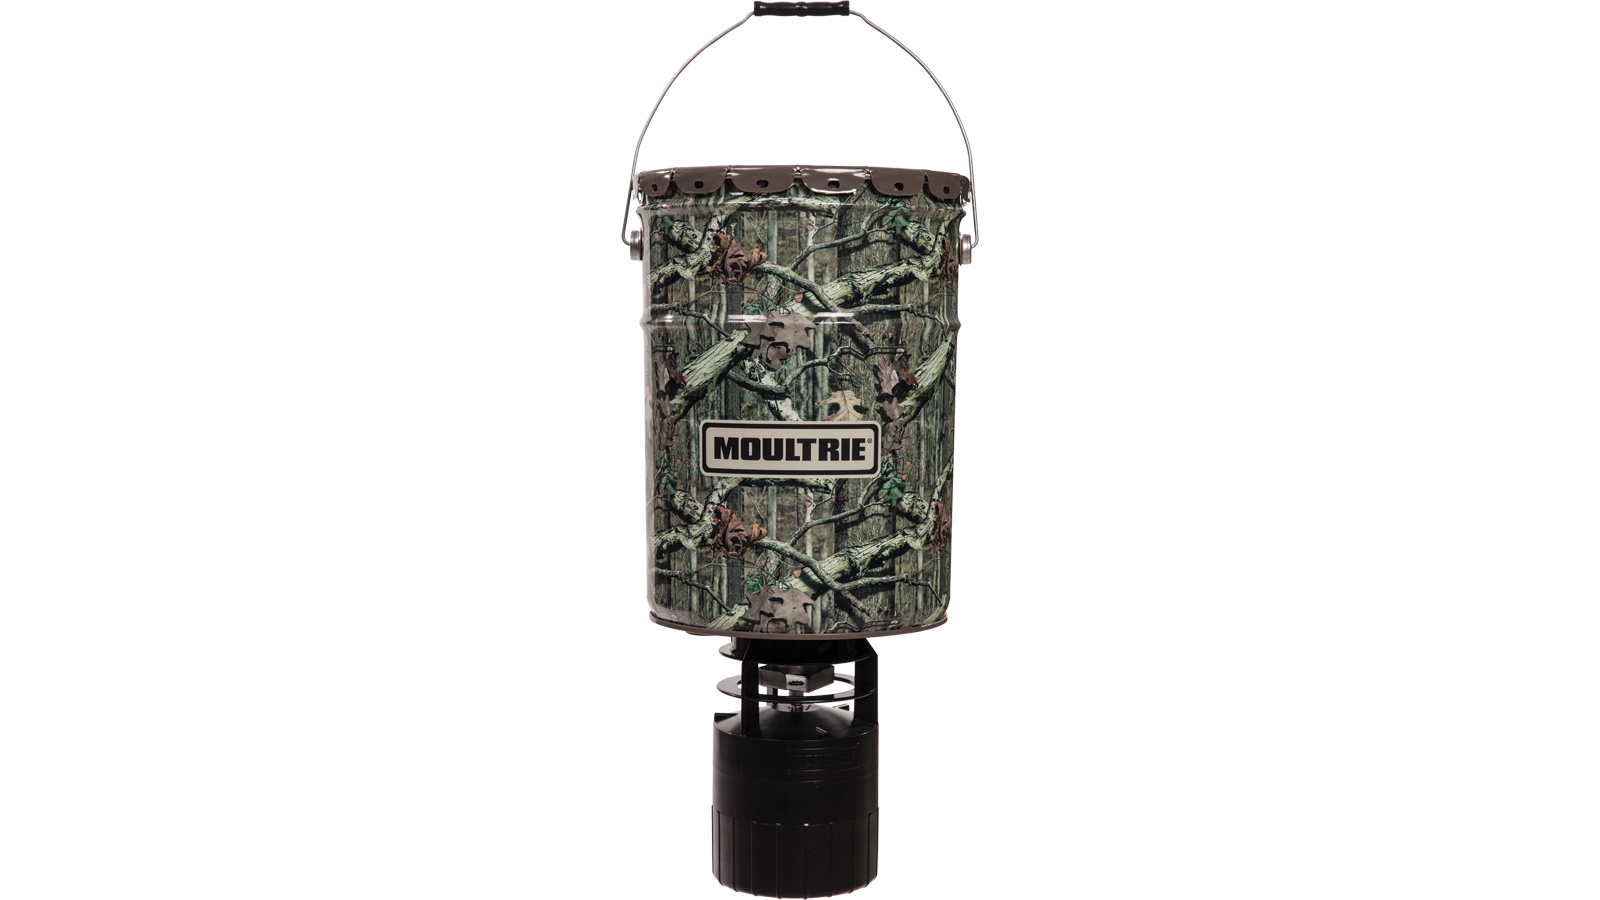 Moultrie MFG13058 Pro Hunter Hanging Feeder 6.5 Gallon